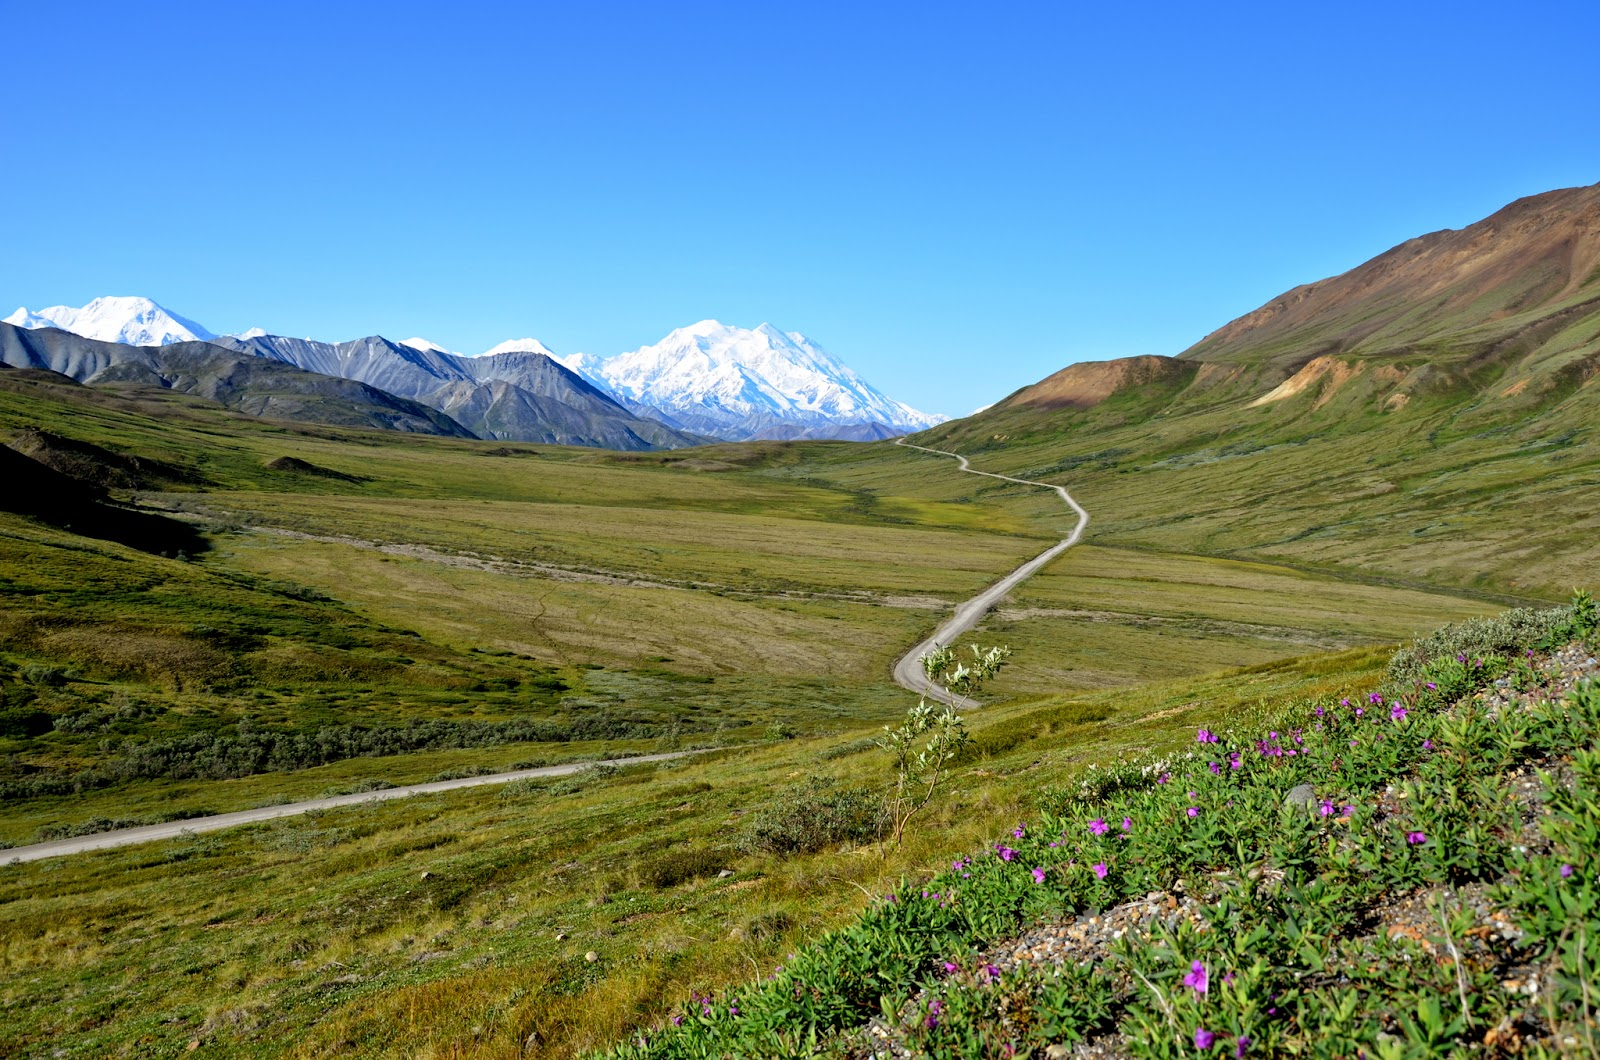 Mount Denali at its best, wonderful landscape